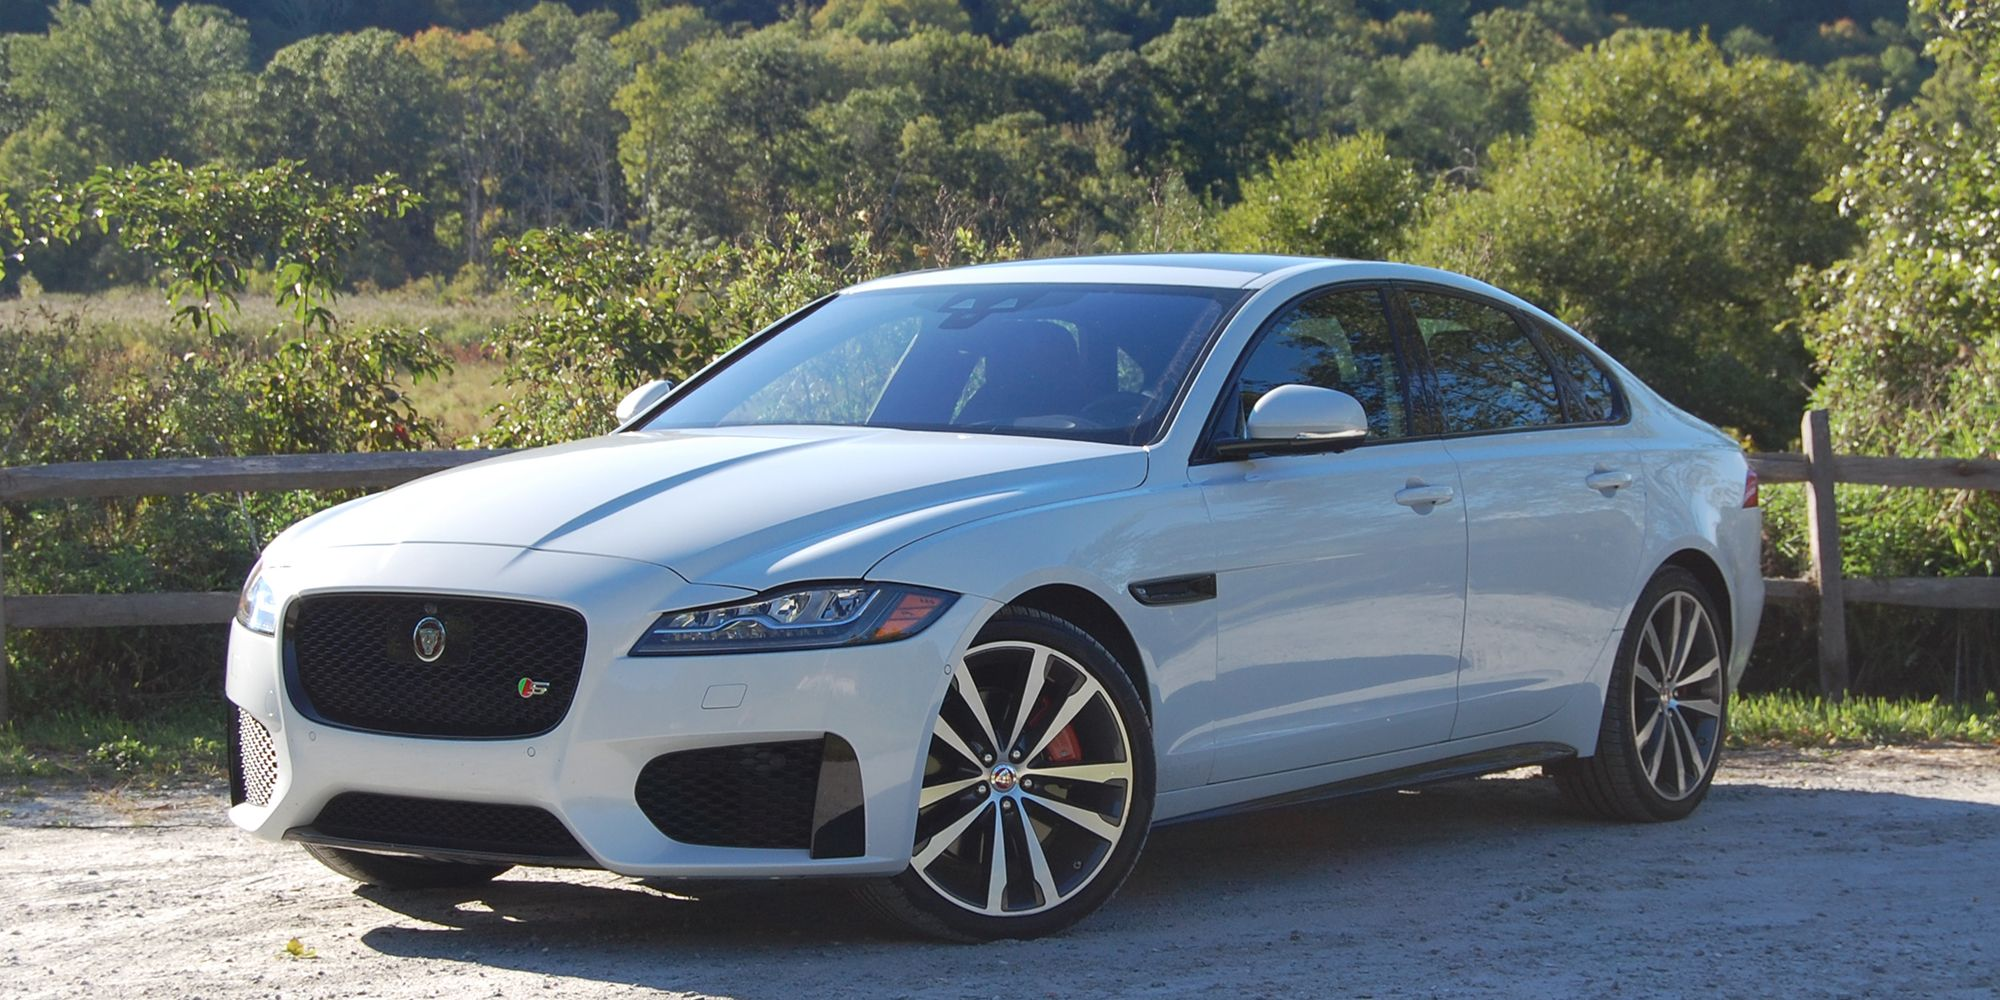 touring new cheap side view a parts passenger front in online xf england diesel features jaguar